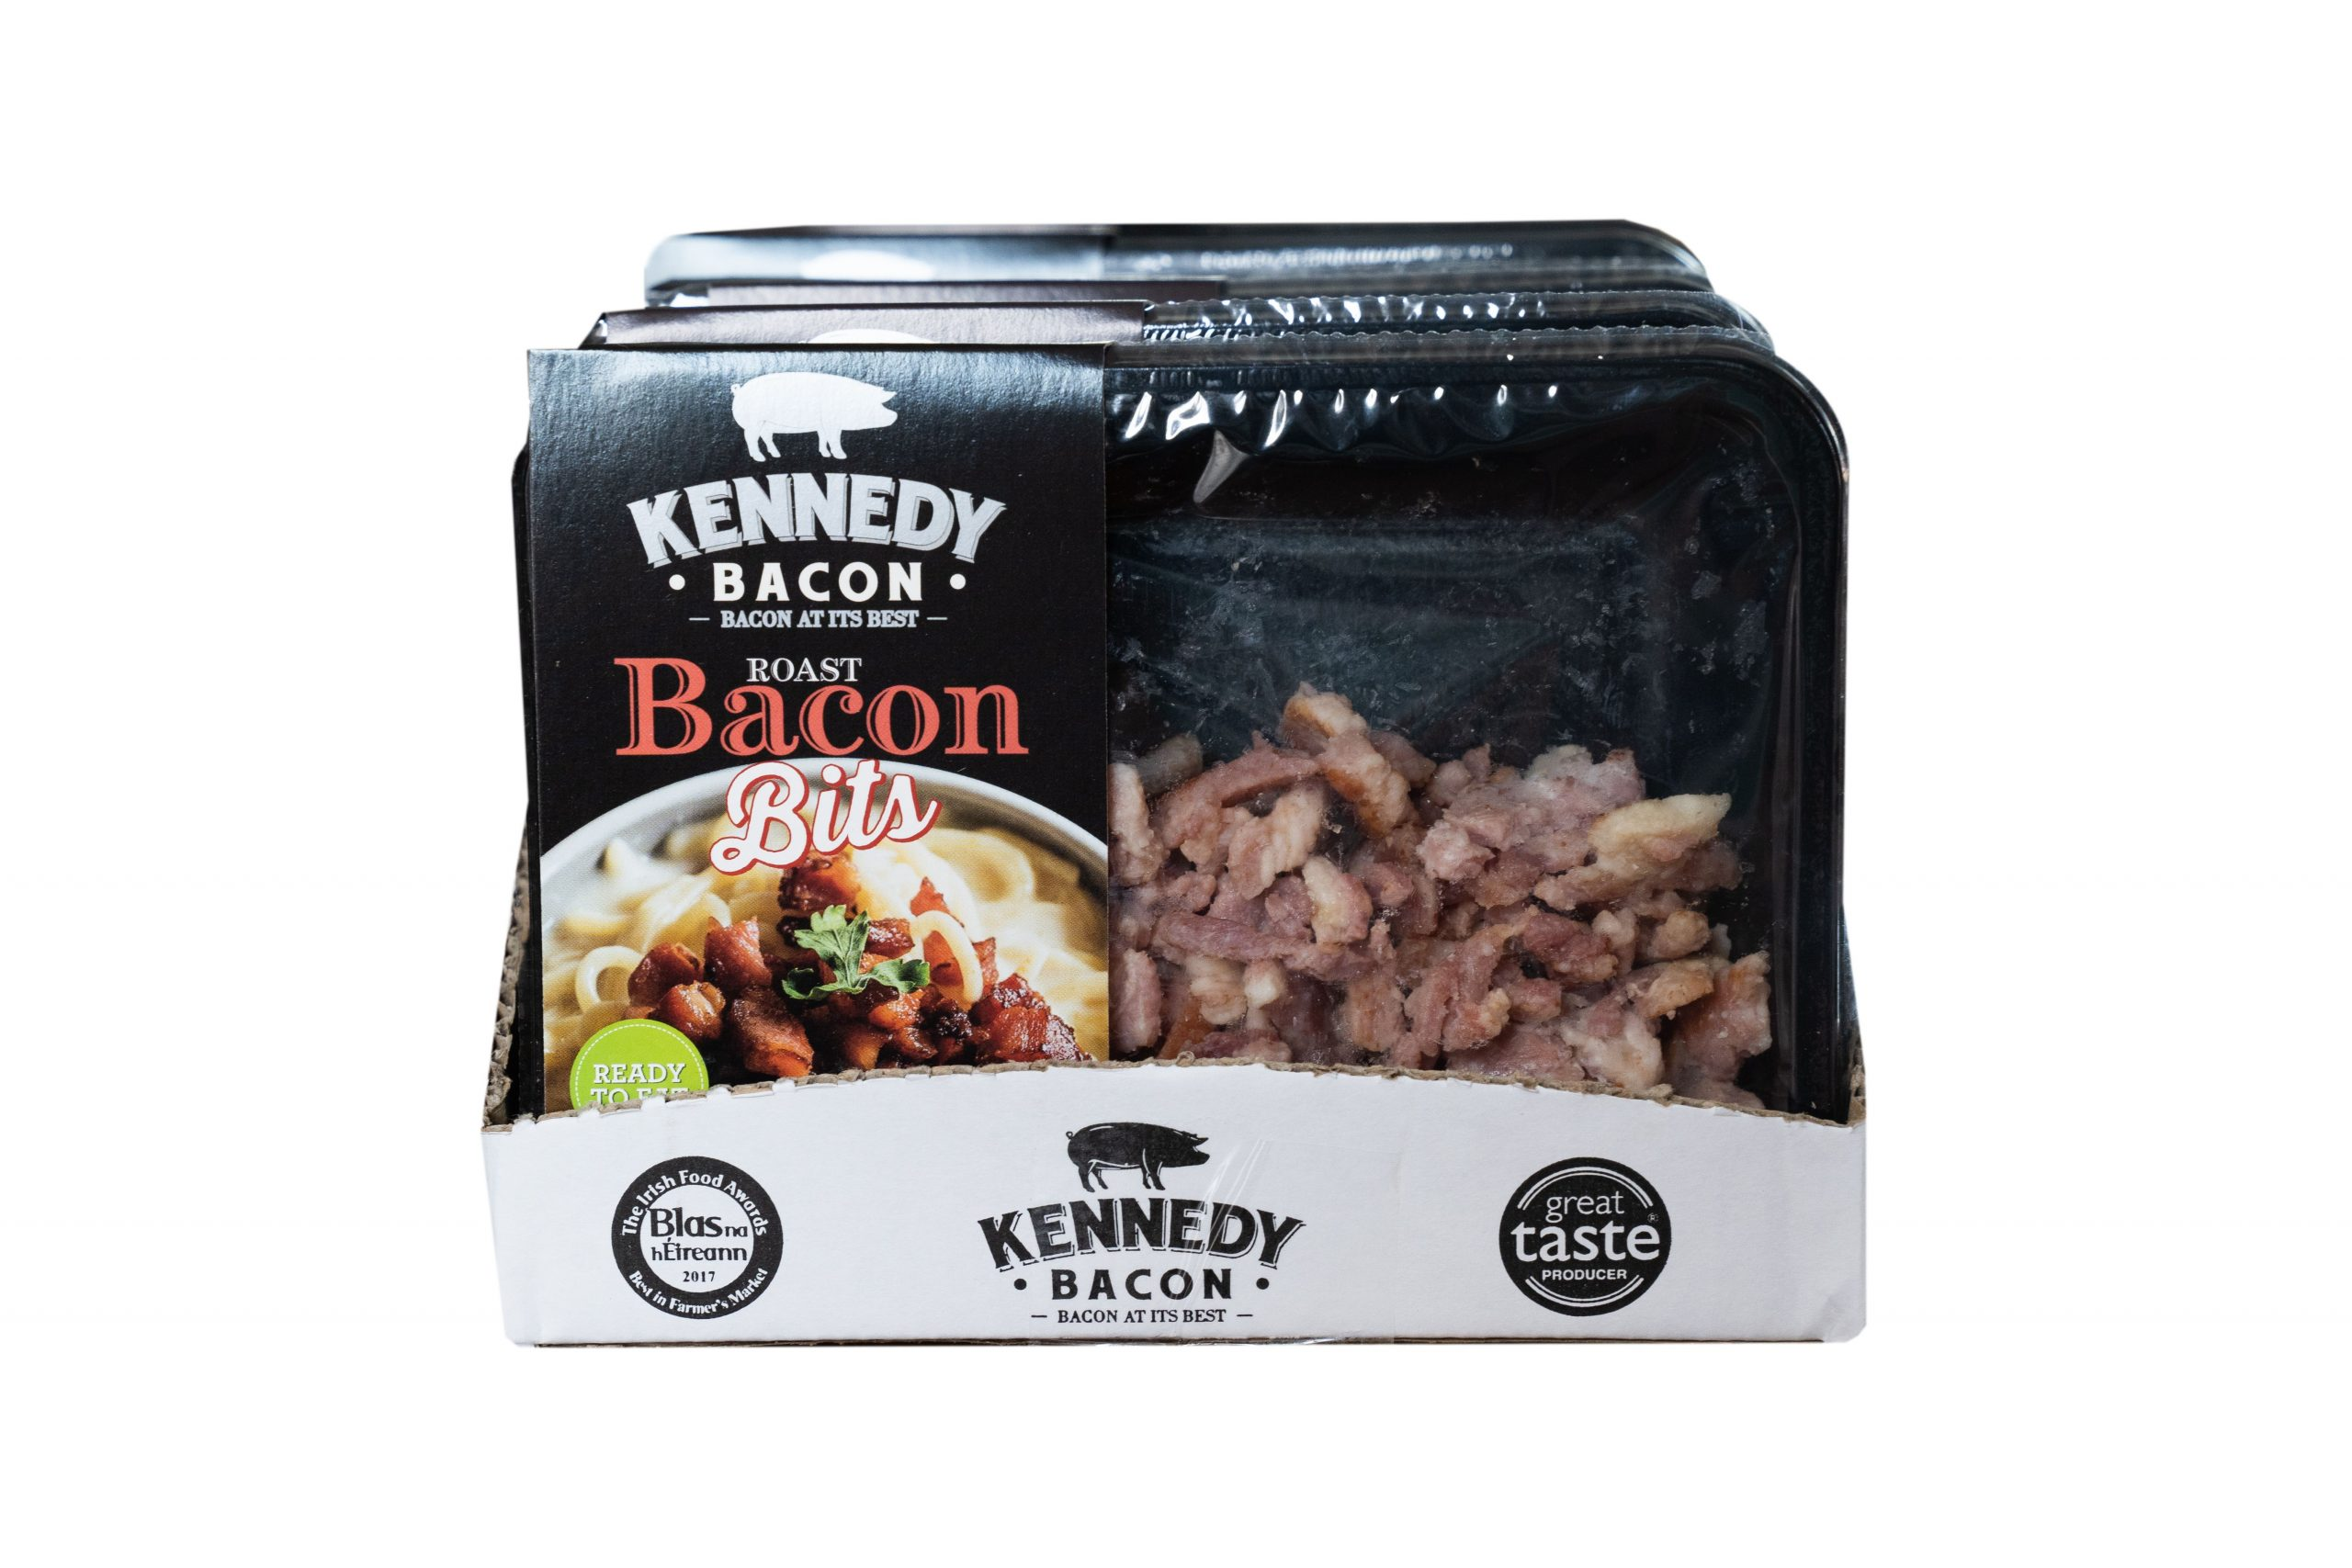 Kennedy Bacon – Bacon at its best, bacon like it used to be